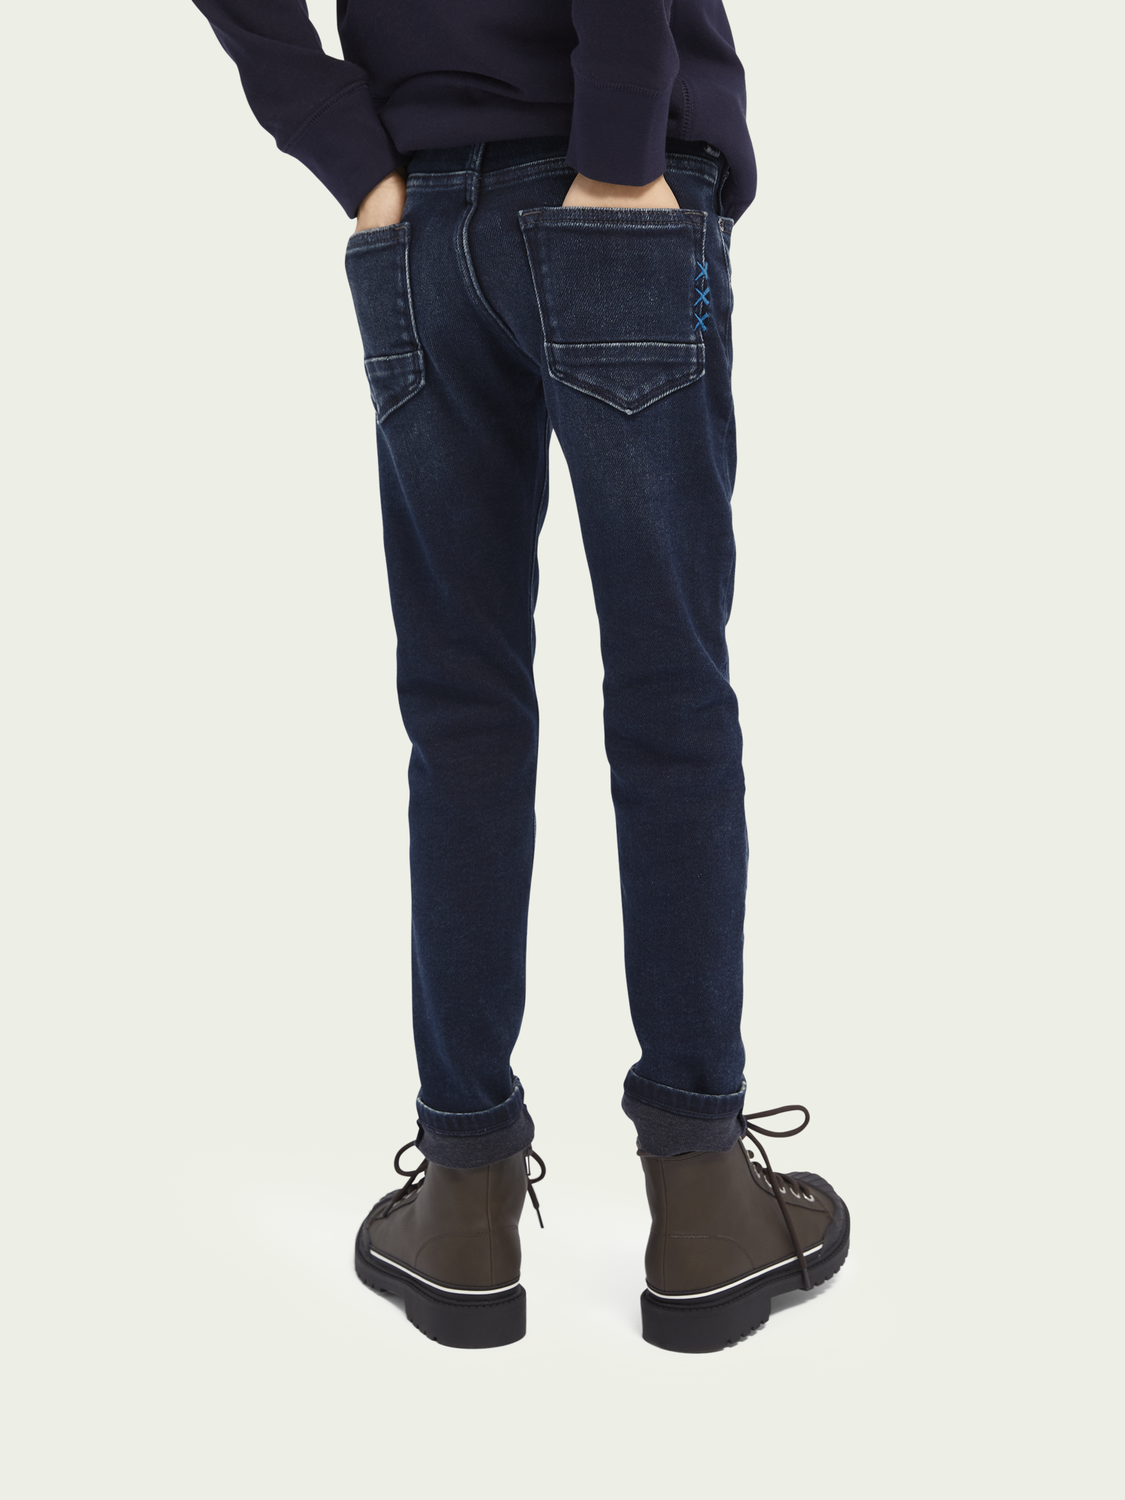 Kinder Tigger Super Skinny Fit Jeans – No Nonsense